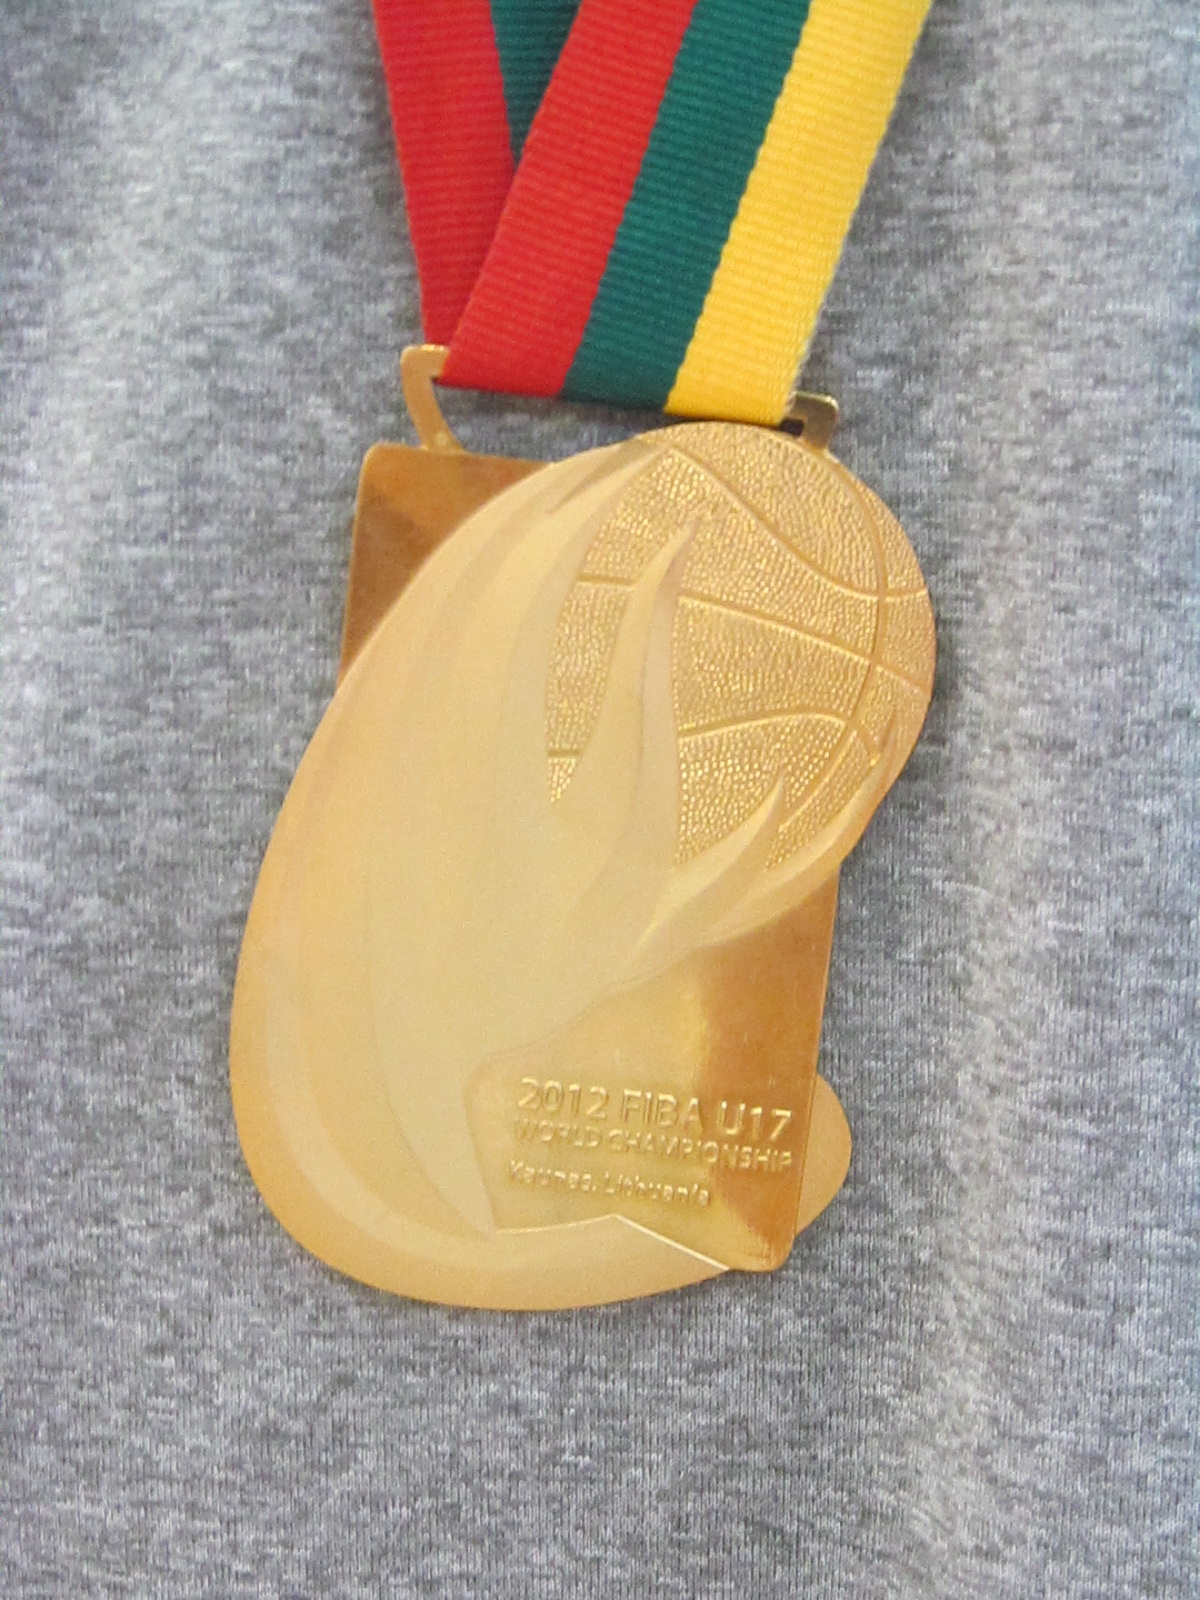 As Bright As His Future, The Gold Medal of Jahlil Okafor. Photo by Andrew Slater